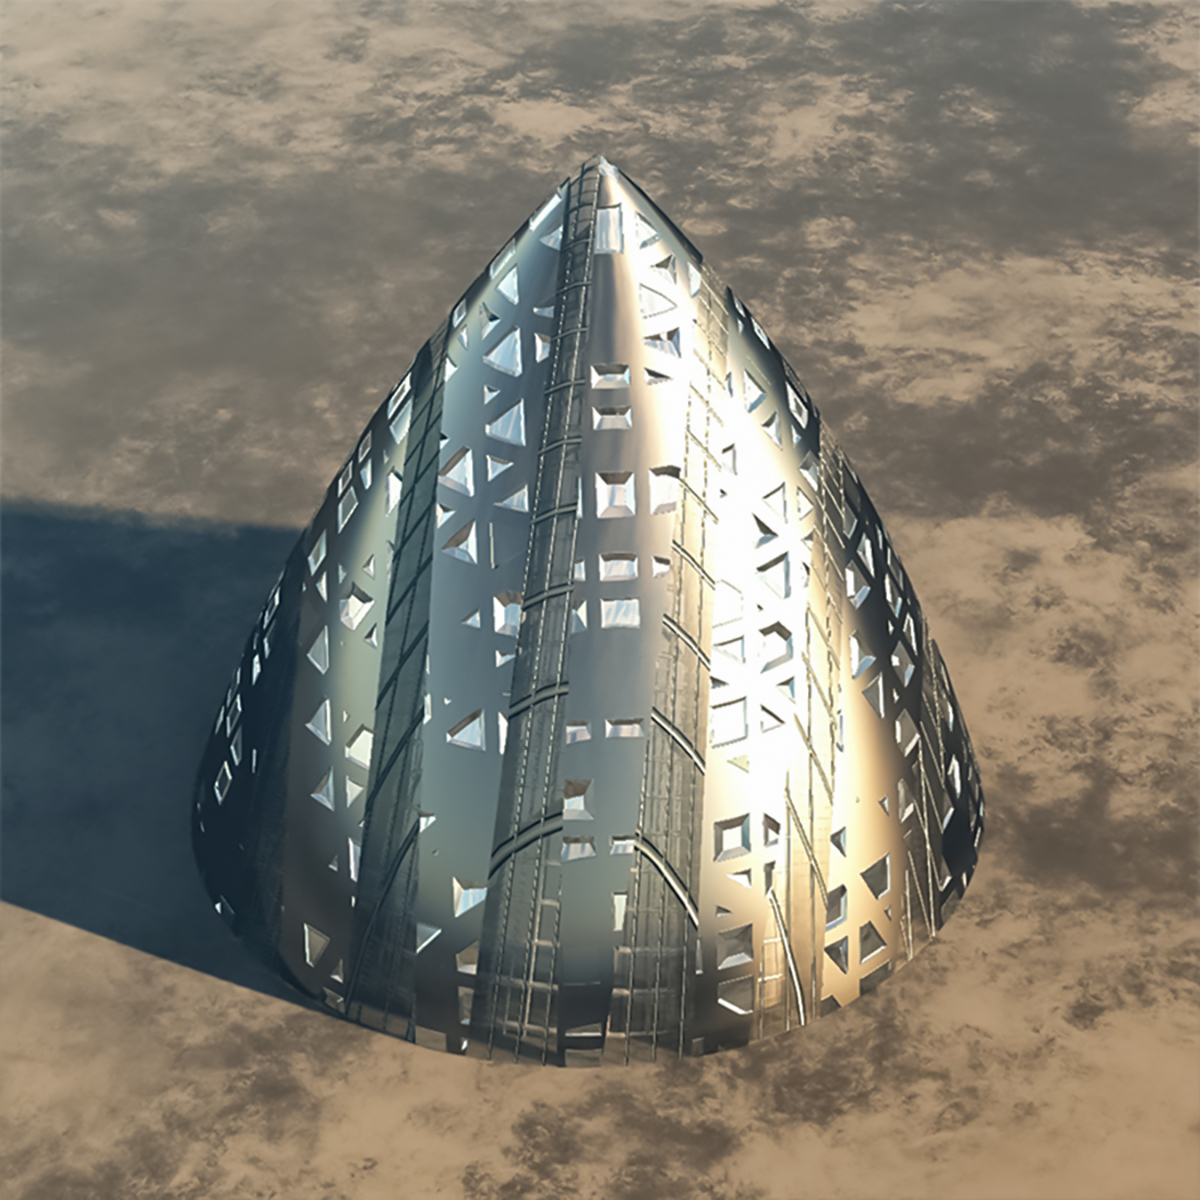 Alien Spaceship or Building  -  Extended License